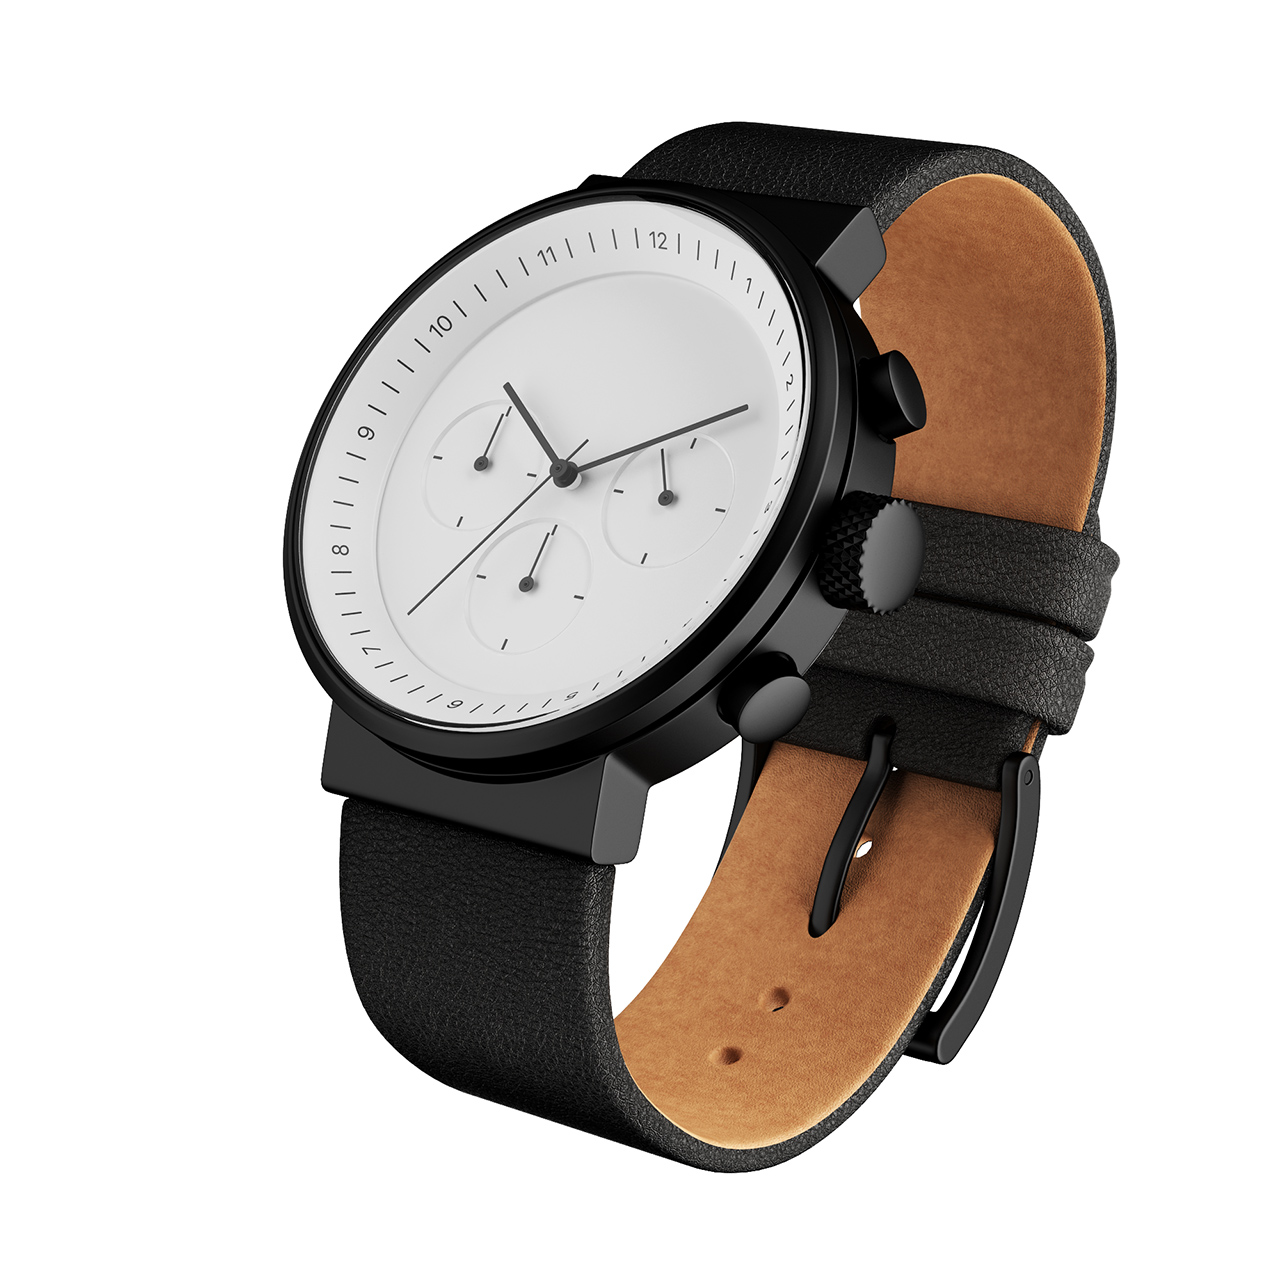 Kiura Watch by Projectswatches